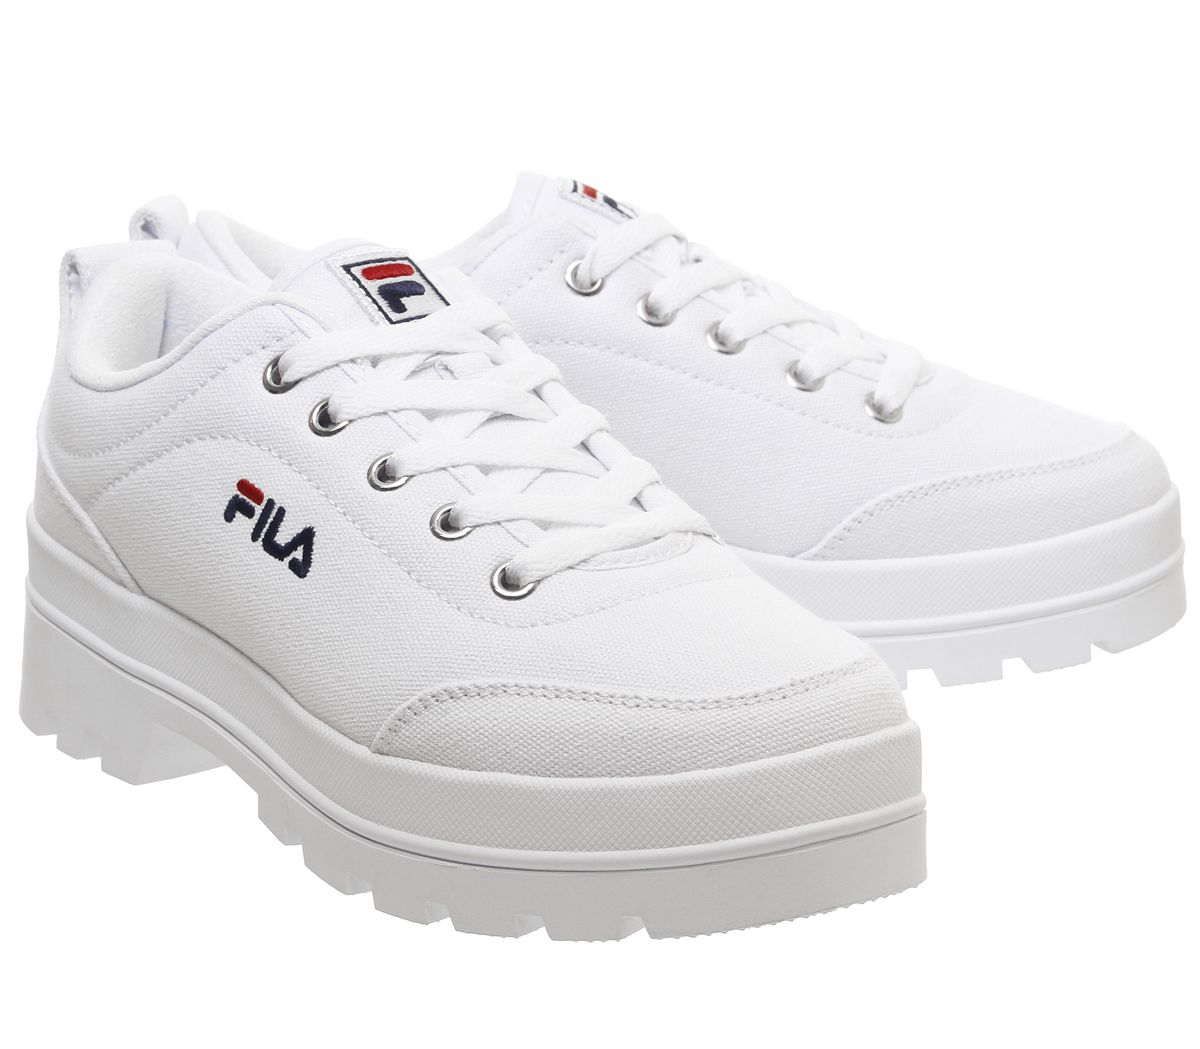 Fila Disruptor Low Donna Turtledove 1010302 00R